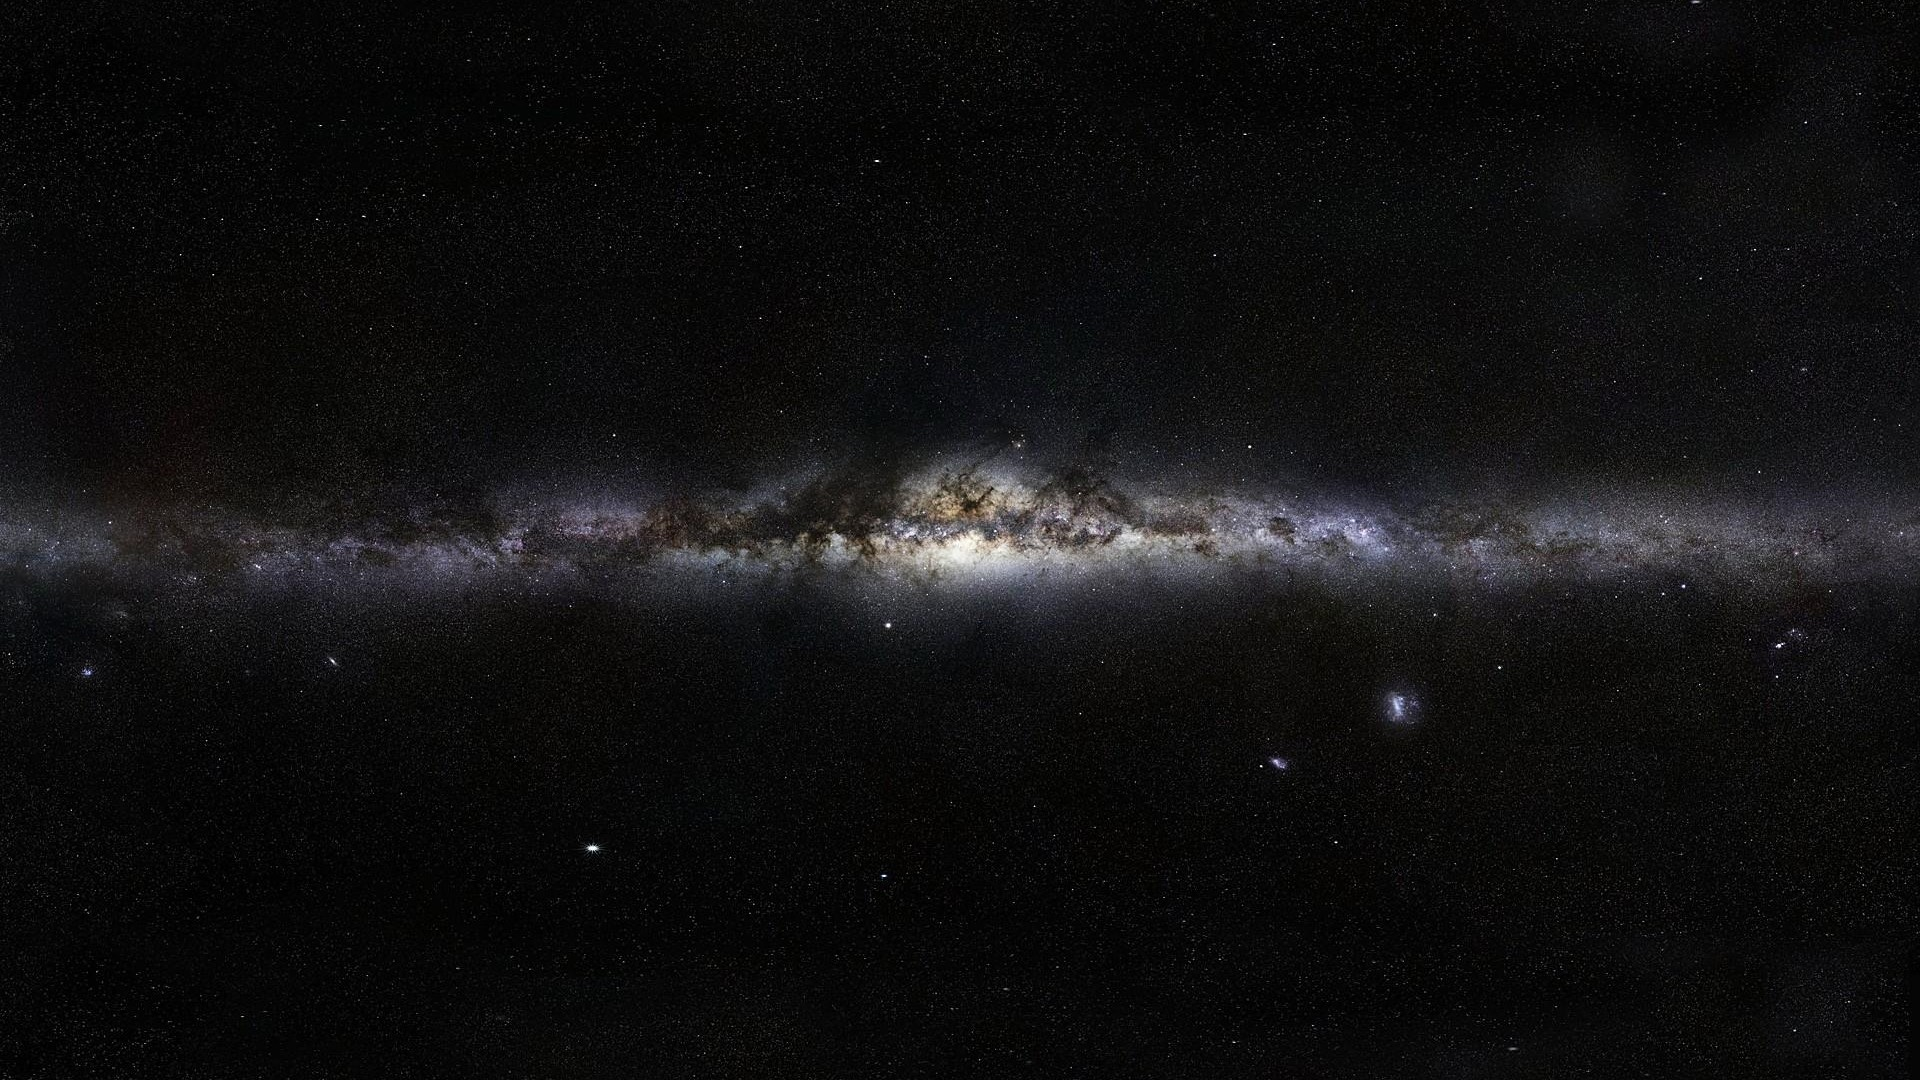 1080p space wallpaper download free high resolution - Windows 7 space wallpaper ...